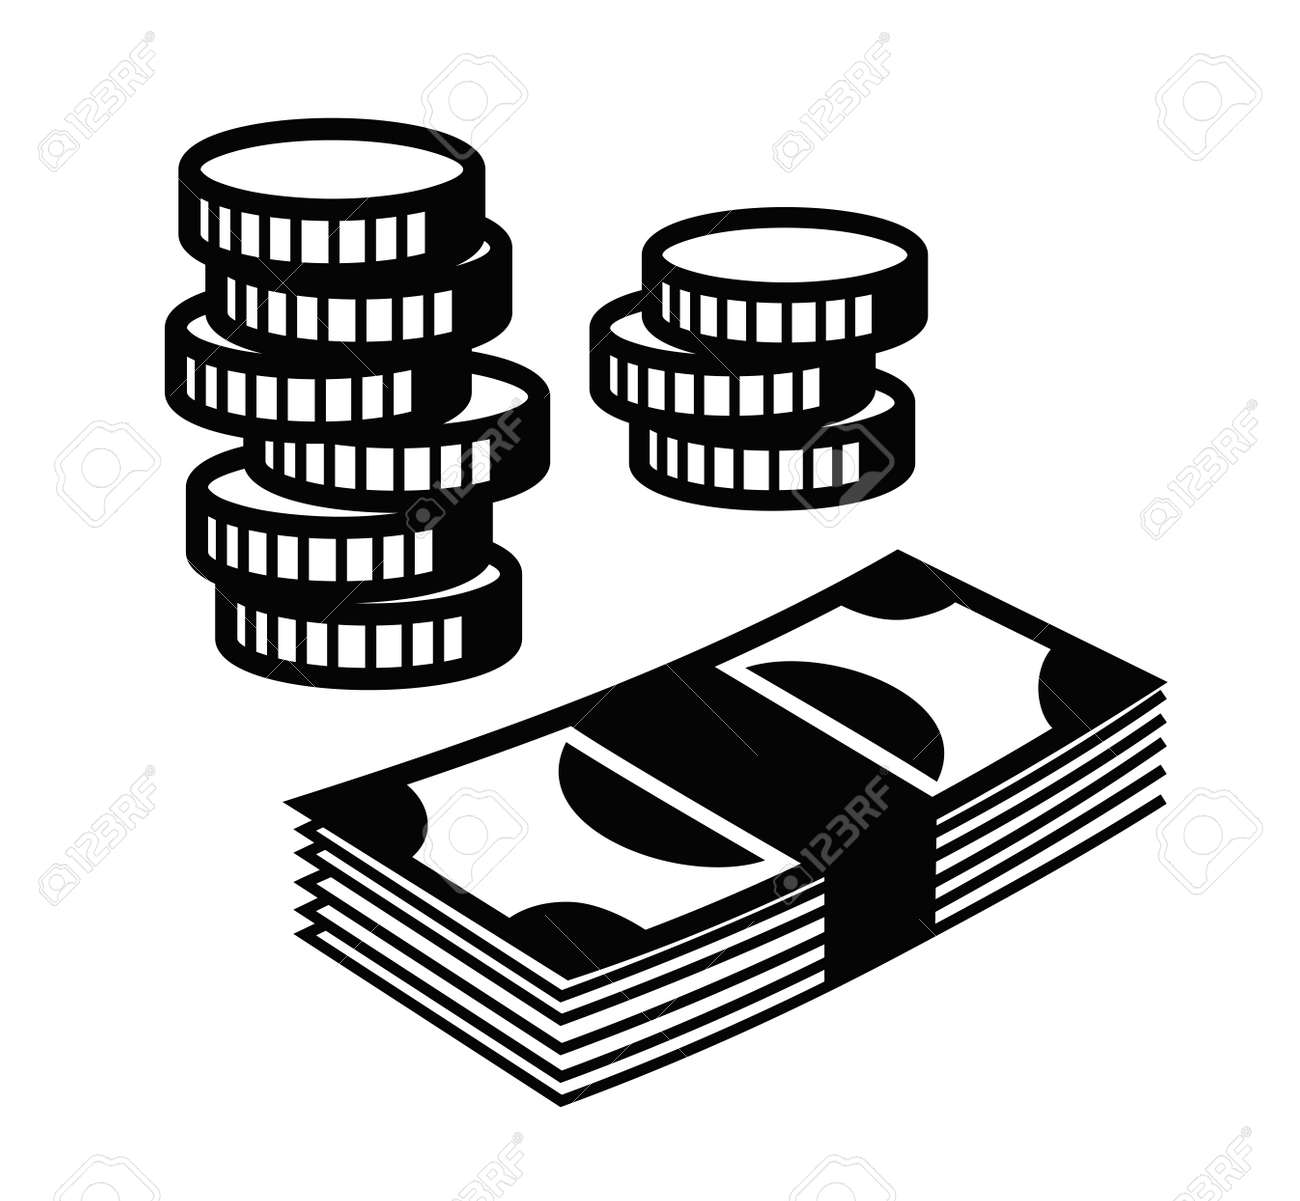 money icon stock photo picture and royalty free image image 26428248